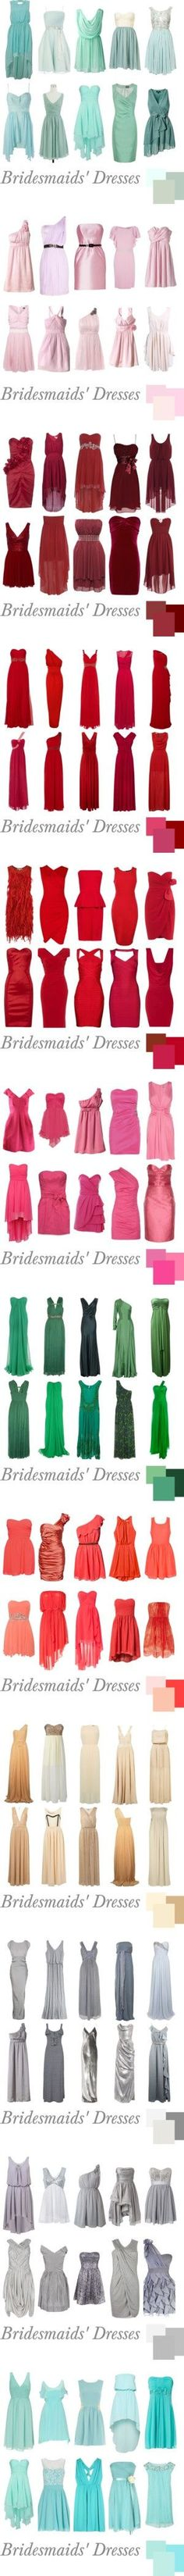 Color and Style Chart of Bridesmaids Dresses For more great tips, tools and Inspiration visit us at Bride's Book and become a VIB it's free and if your looking for a vendor visit our VIB Local Vendor Directory to find your perfect match.